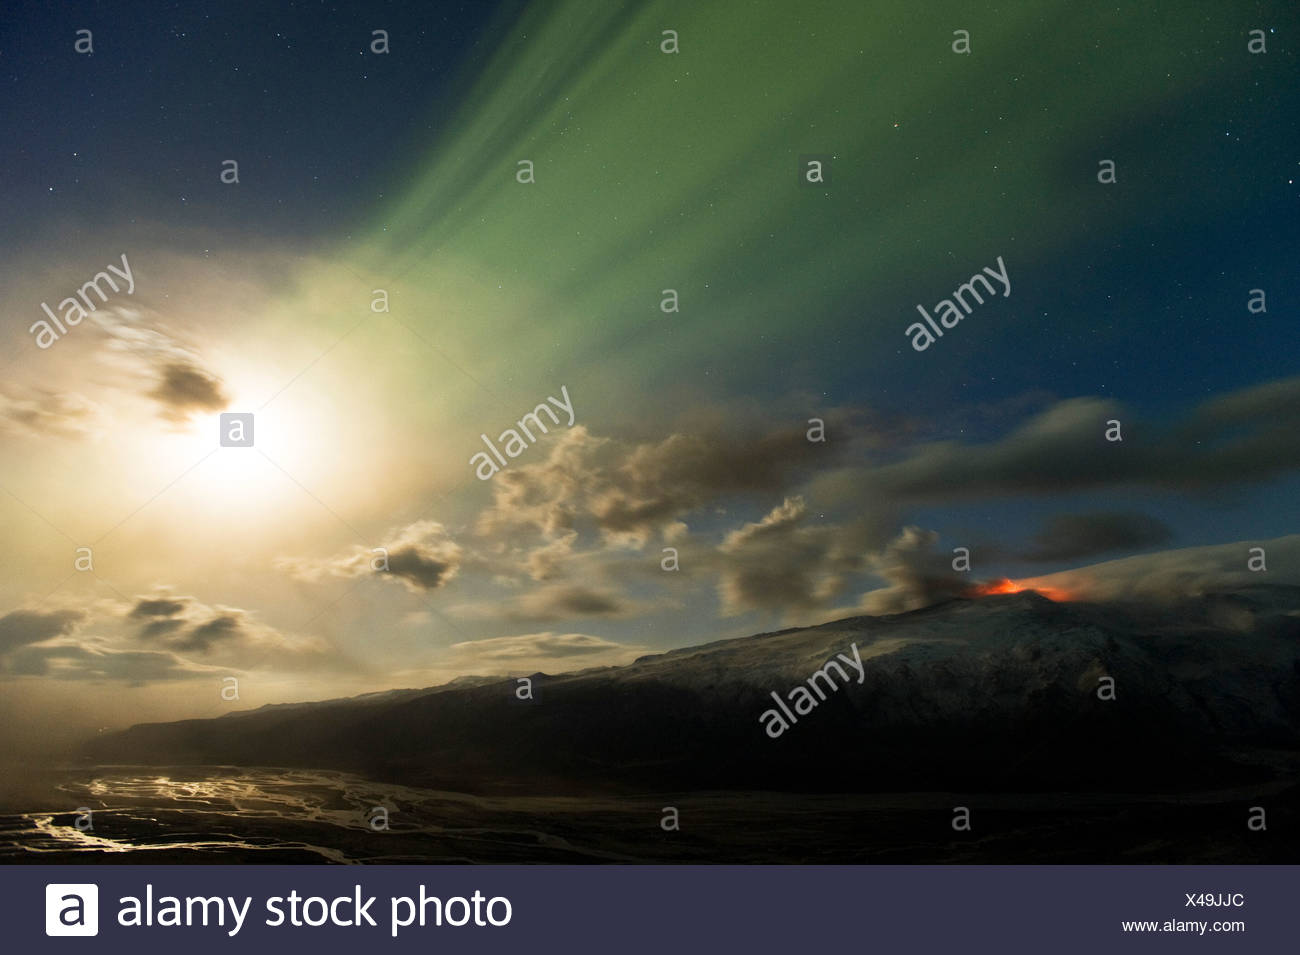 Weak northern lights and full moon over the final eruption of Eyjafjallajoekull Volcano and the river bed of the Markarfljót - Stock Image